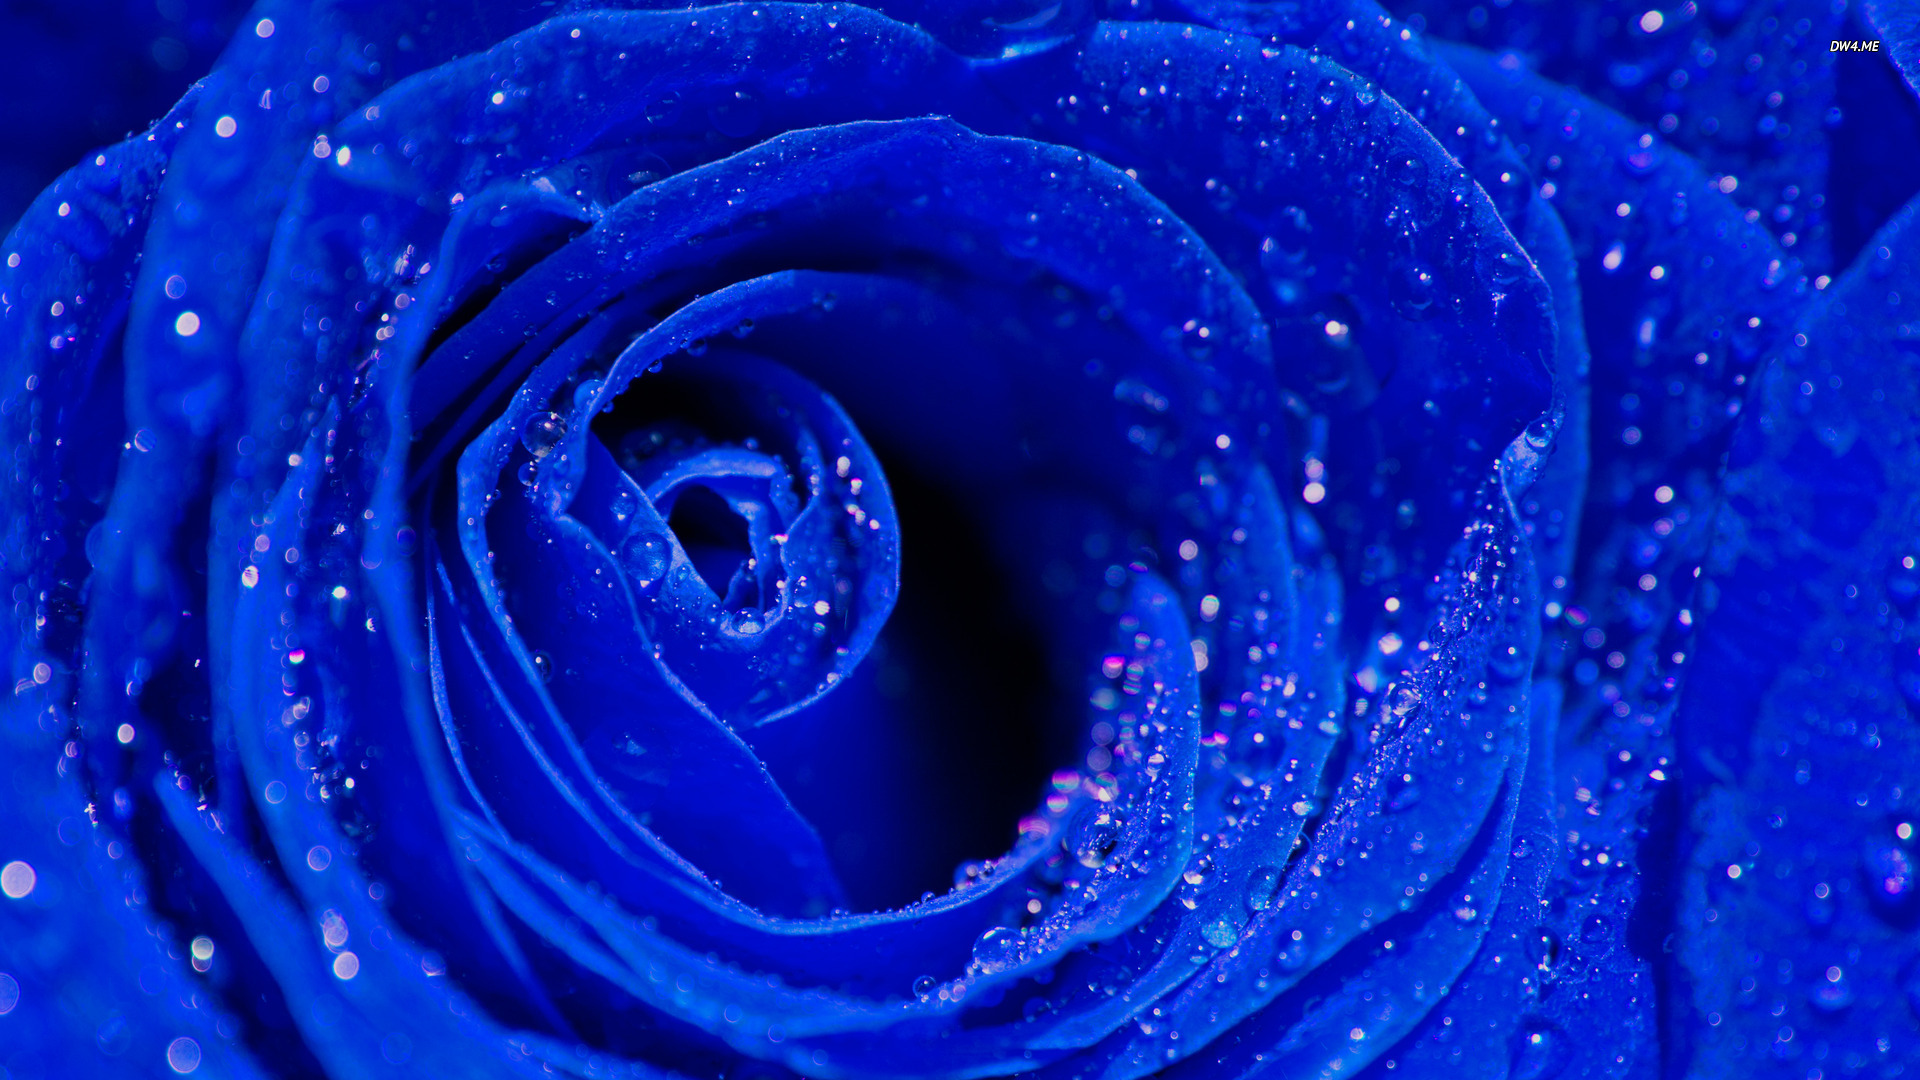 Fantastic Wallpaper High Quality Blue - blue-roses-background_110701352  Perfect Image Reference_651882.jpg